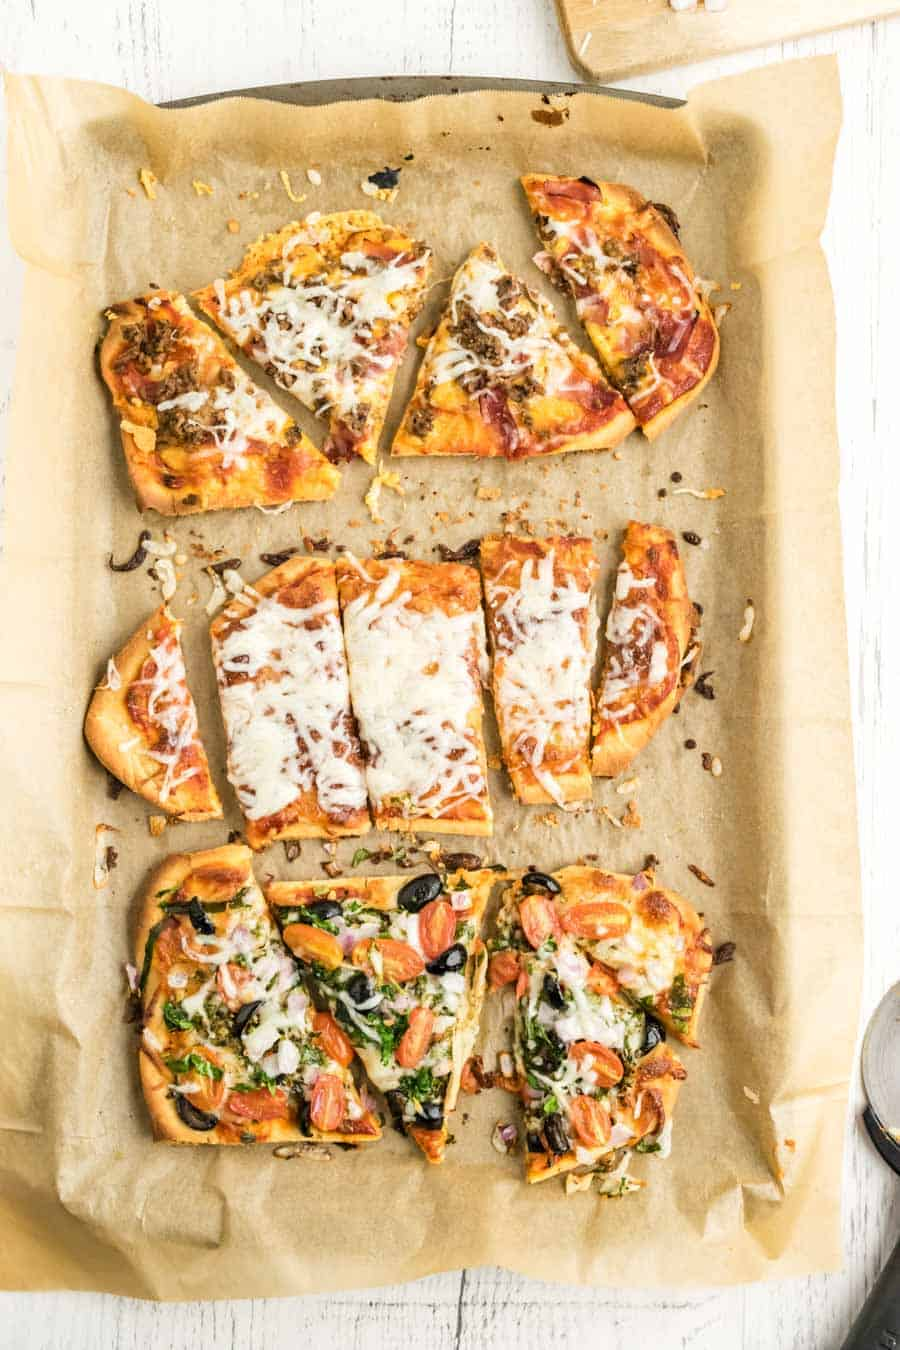 3 kinds of flatbread pizza baked and sliced on a baking sheet